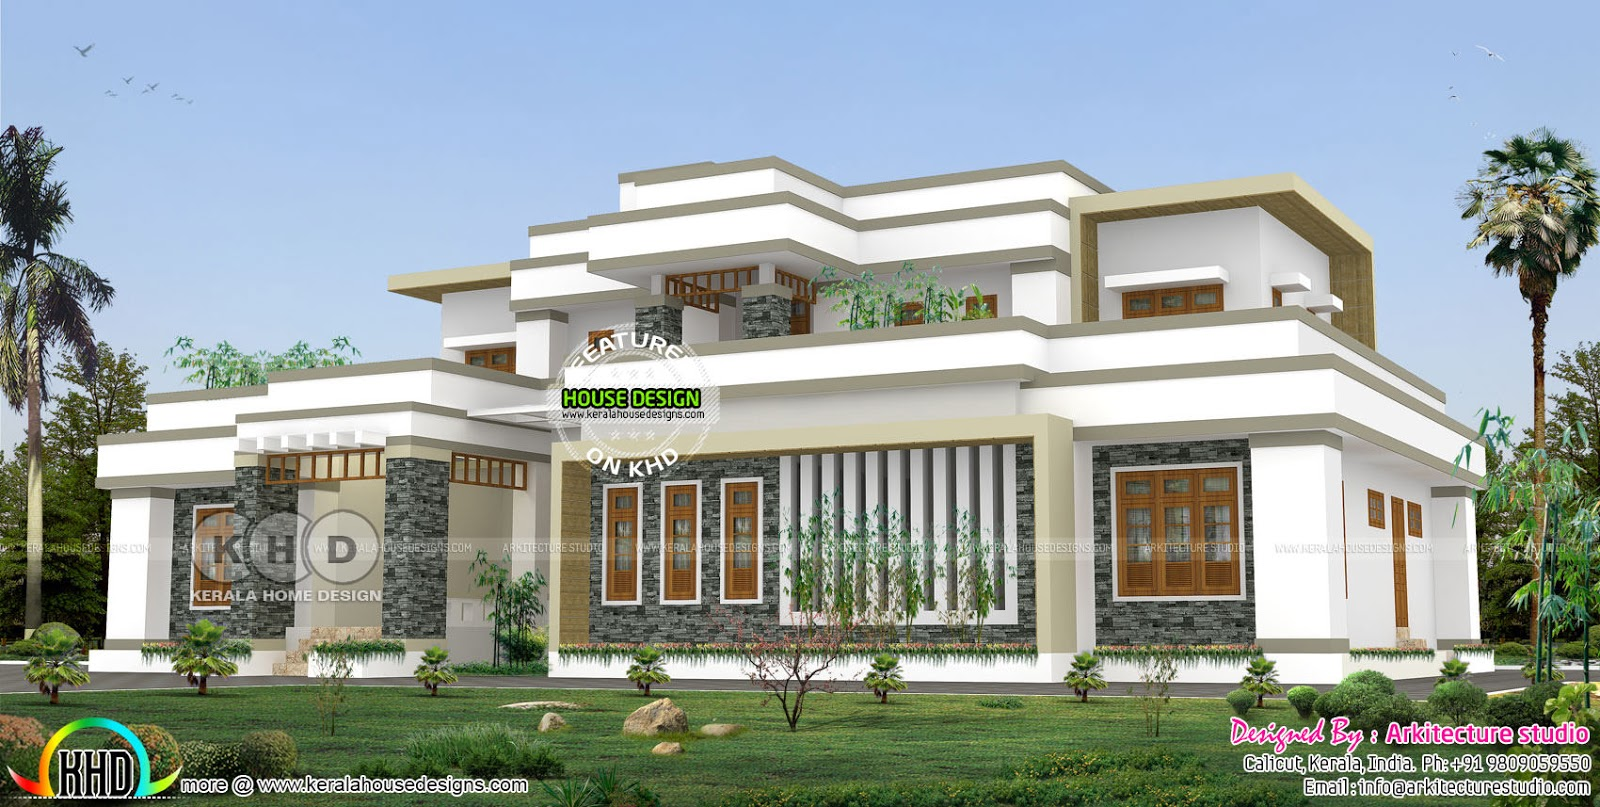 4000 square feet 4 bedroom modern luxury house | Kerala home design on pool house plans, luxury estate mansion house plans, luxury 3 bedroom house plans, luxury patio house plans, luxury 2 bedroom flat plans, 4 bedroom home floor plans, pet friendly house plans, luxury room plans, simple house plans, southern house plans, luxury beach house plans, luxury office plans, 6 bedroom home floor plans, two story luxury house floor plans, rustic metal roof ranch house plans, luxury bed plans, luxury 1 bedroom house plans, luxury bachelor house plans, 6 car garage tandem plans, luxury 7 bedroom house plans,